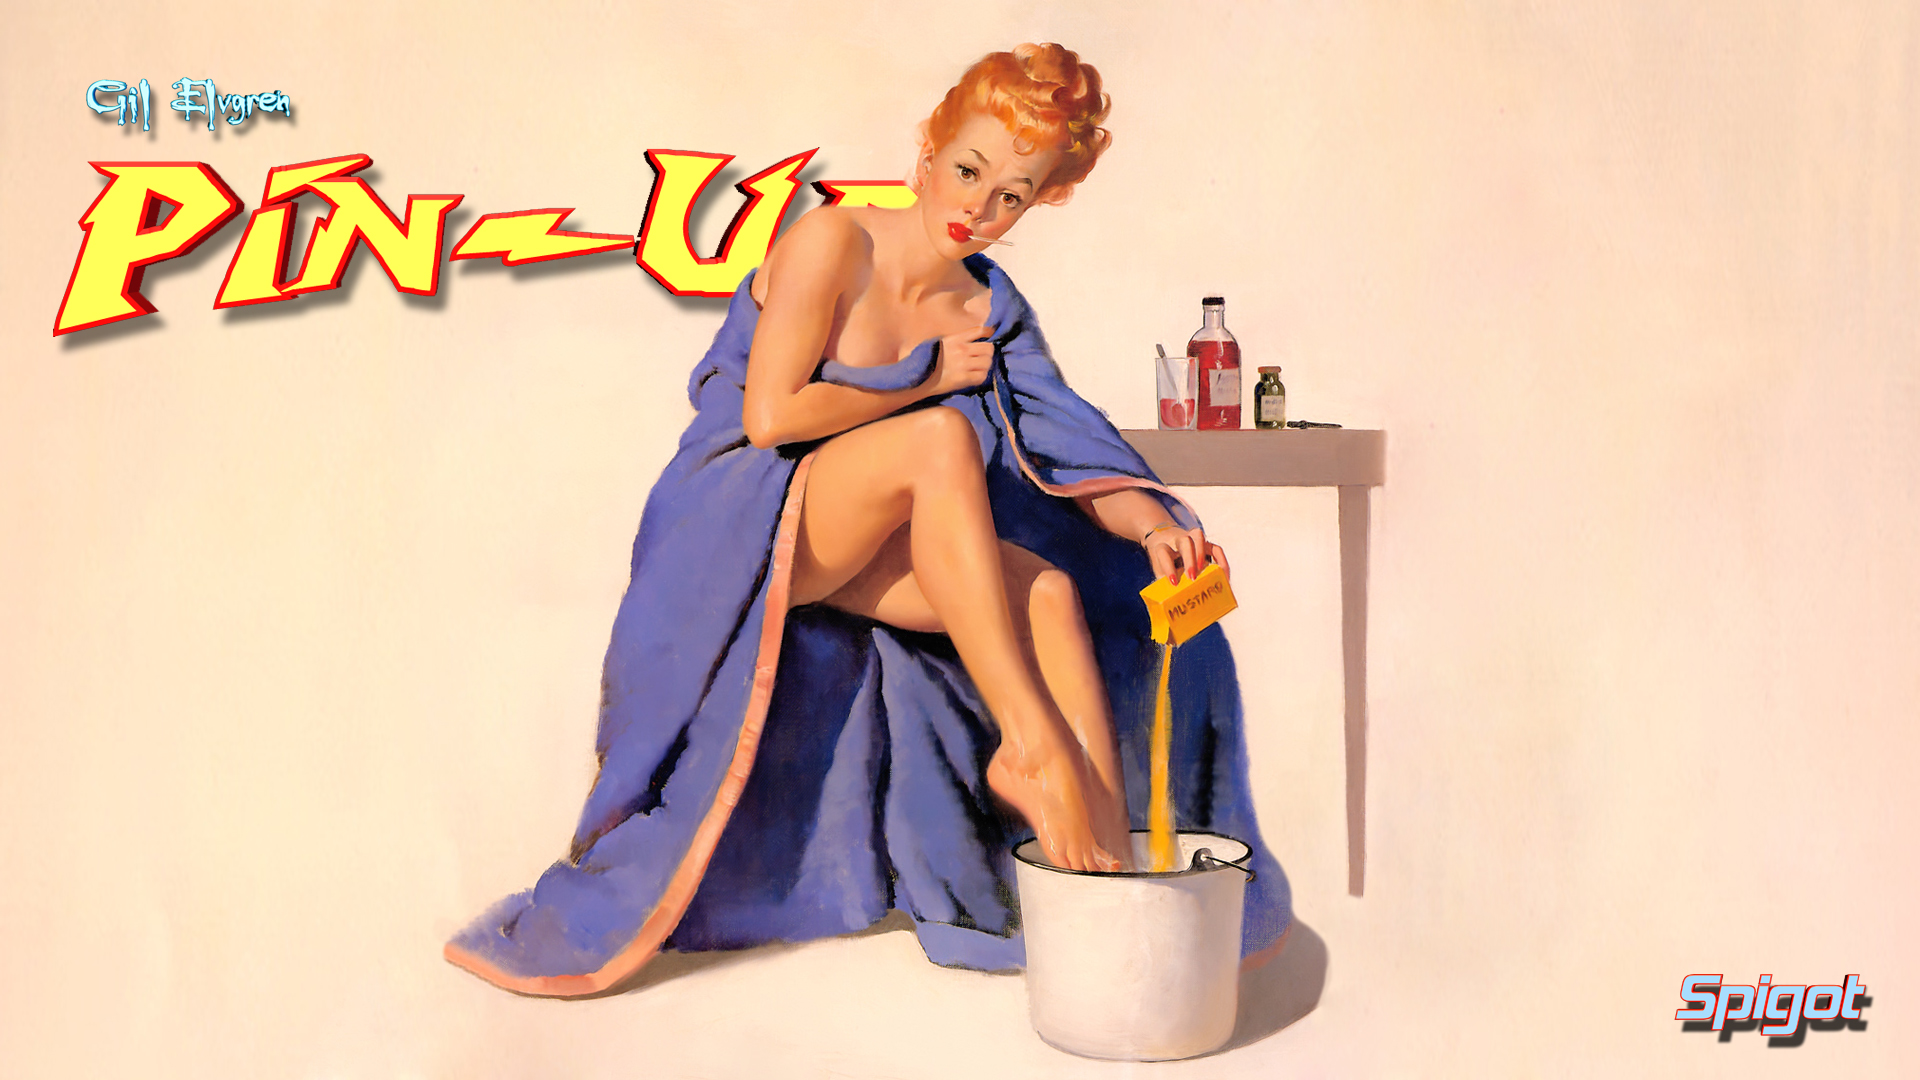 A Few More Gil Elvgren Wallpaper's | George Spigot's Blog